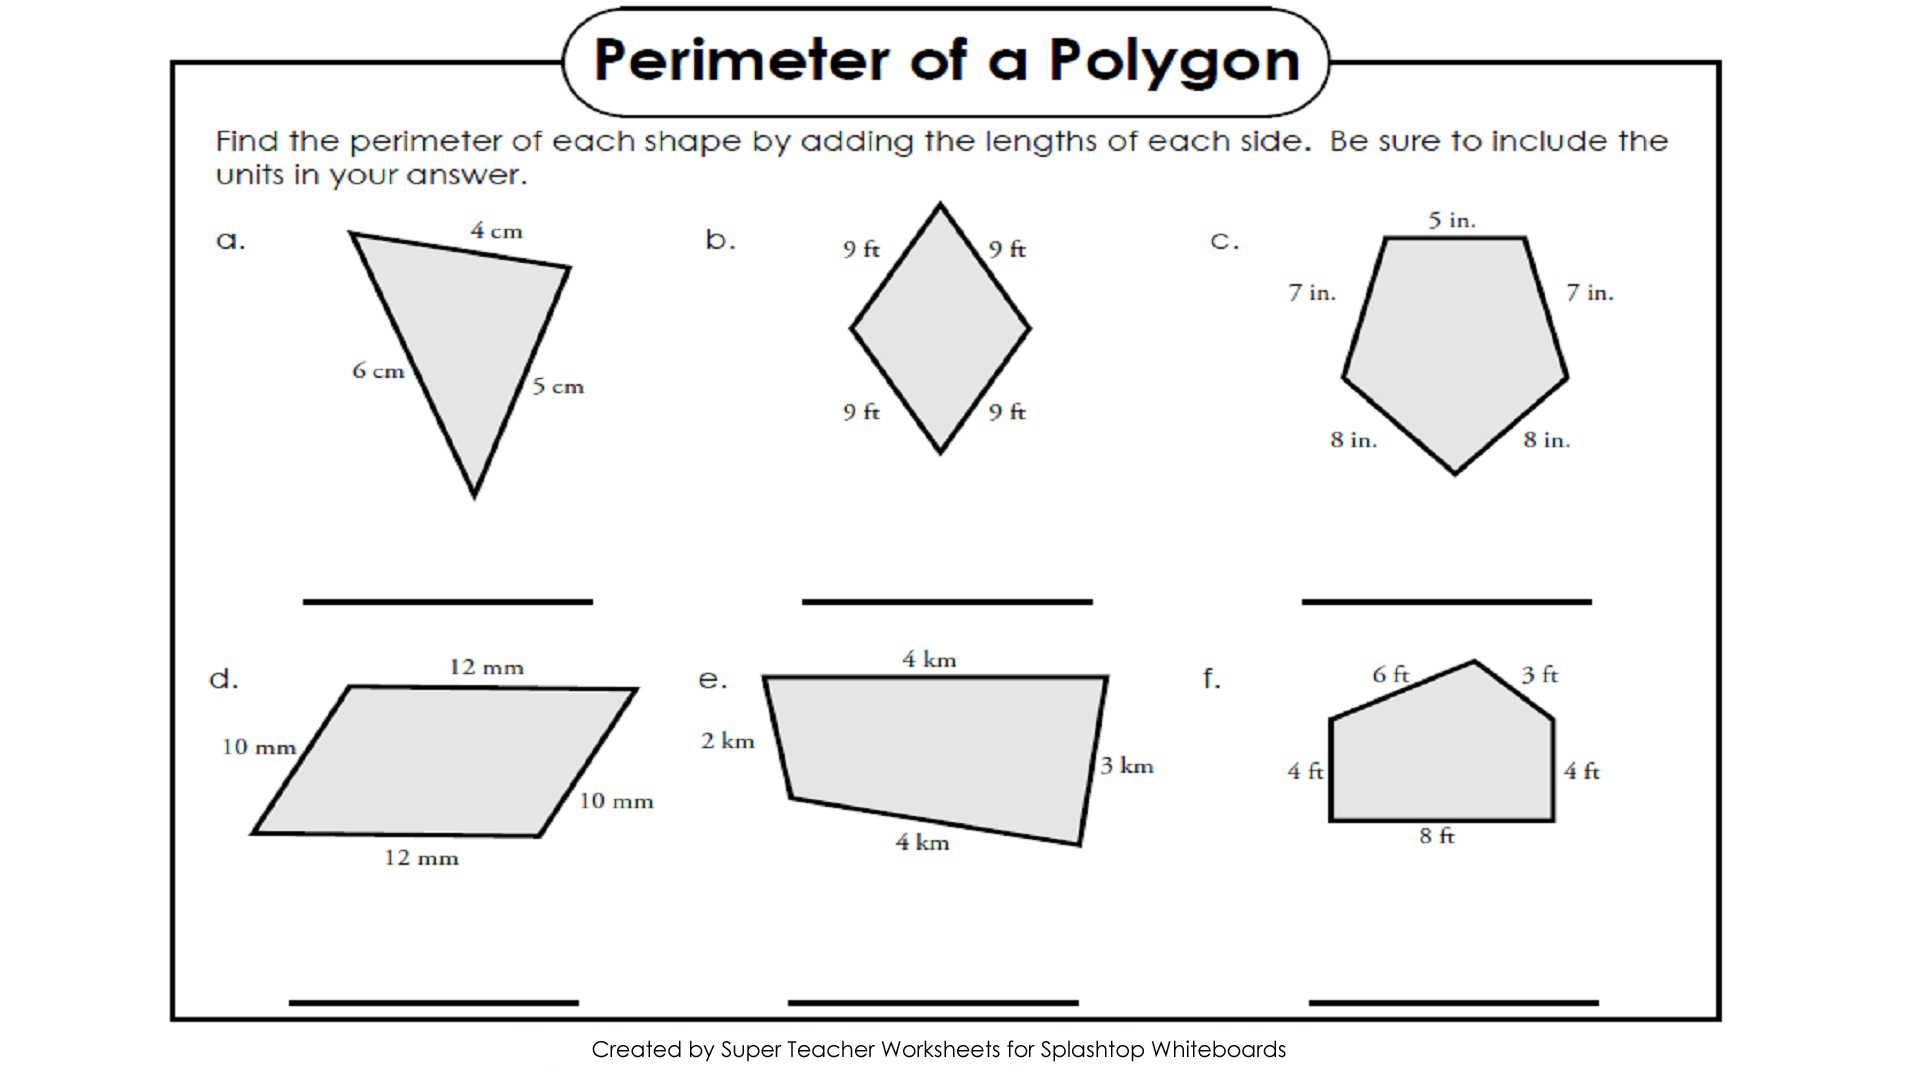 Splashtop Whiteboard Background Graphics – Perimeter of Irregular Shapes Worksheet